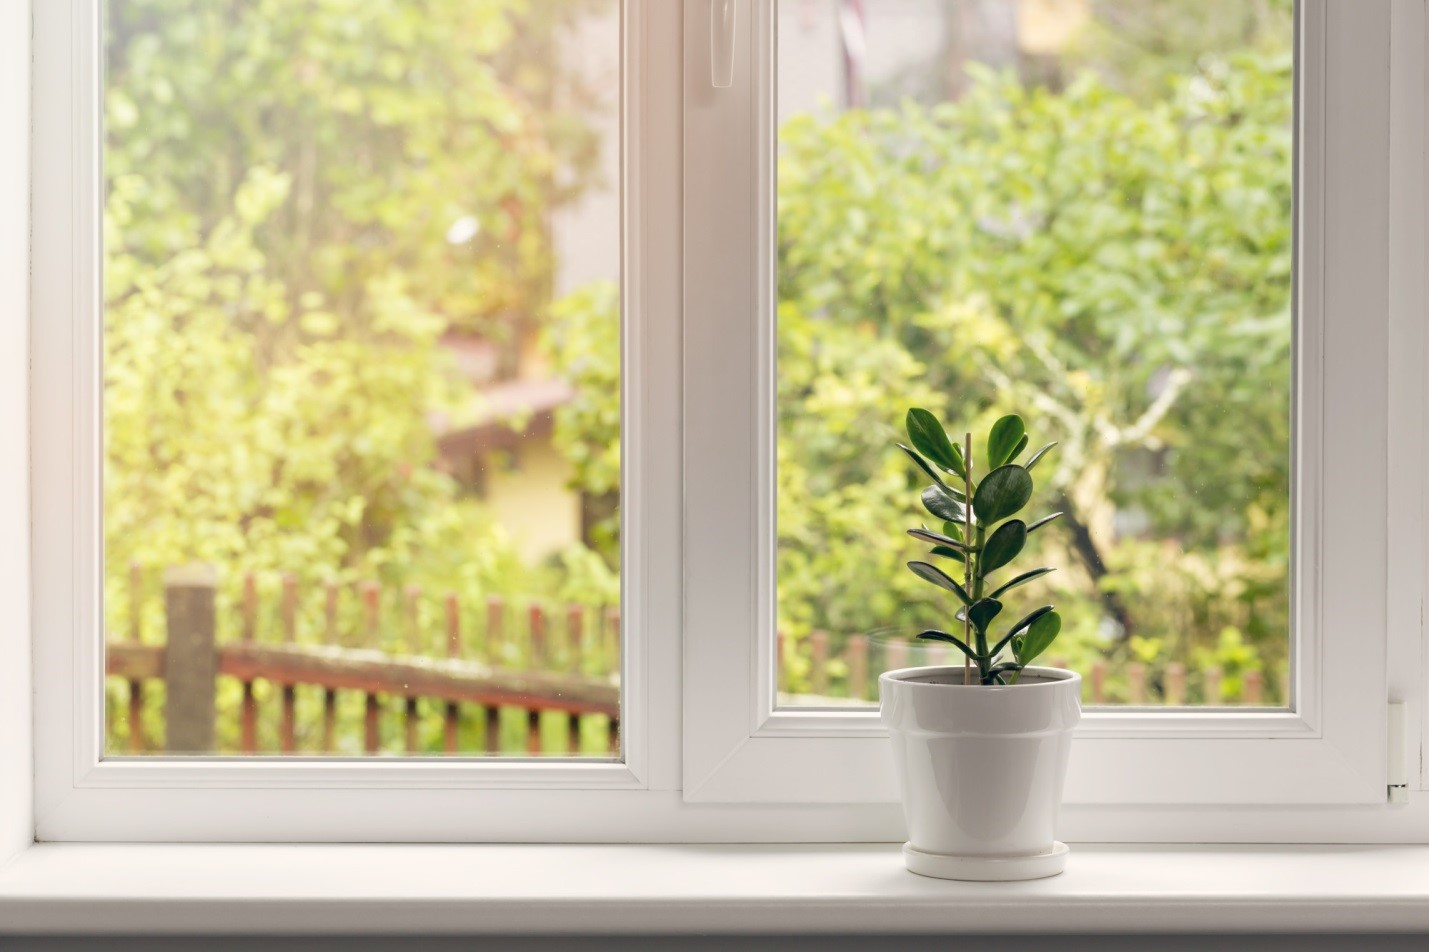 image - 9 Window Design Ideas to Spice up Your Home